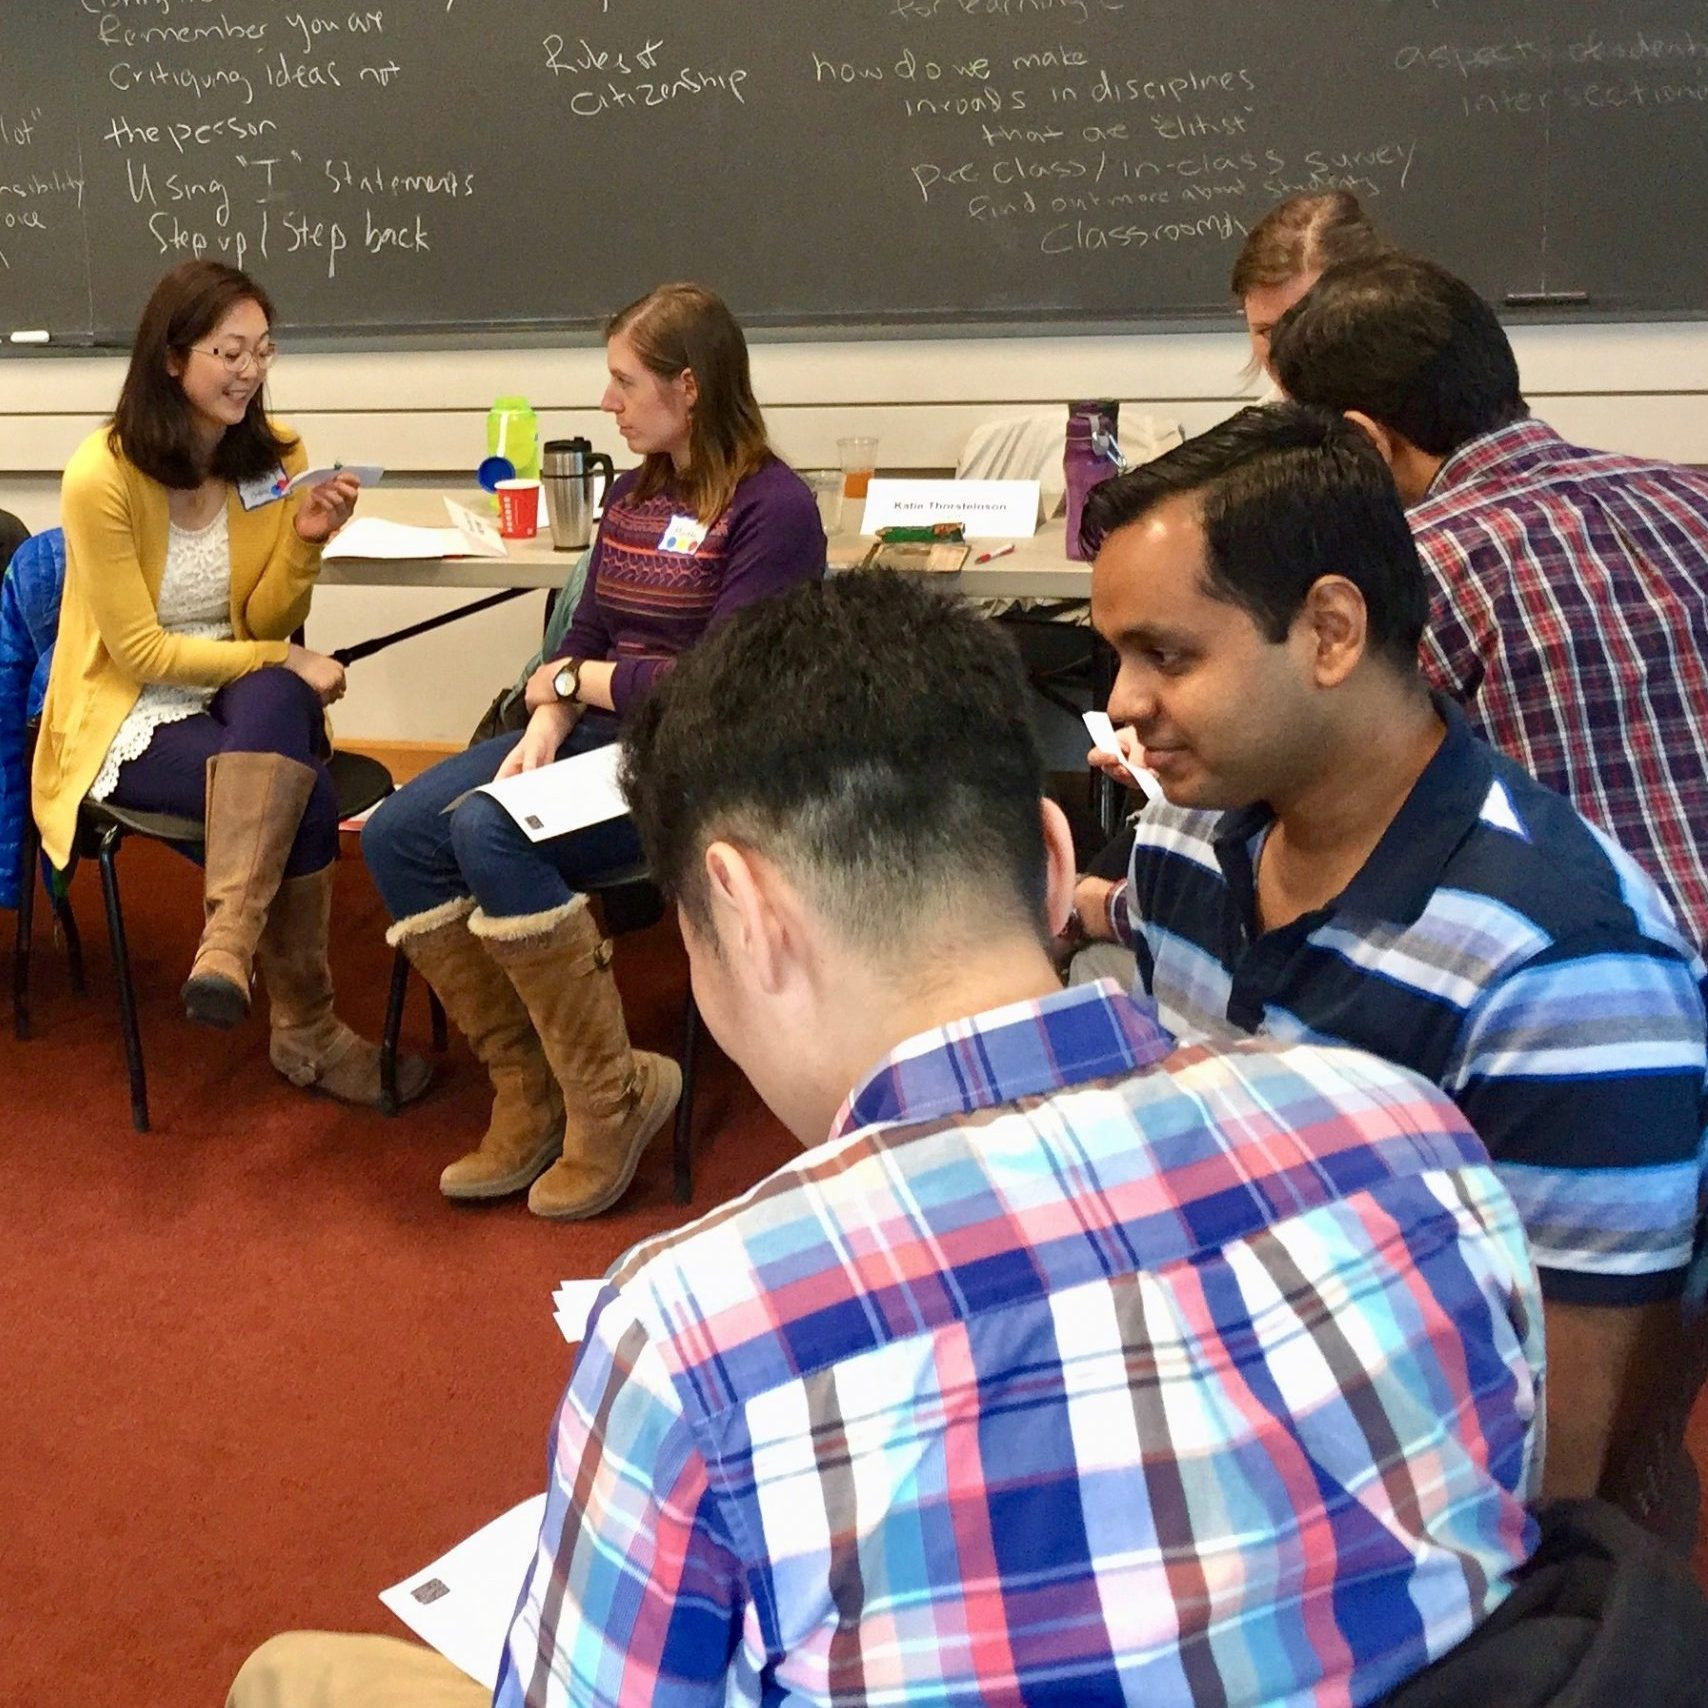 Graduate and postdoctoral participants in the Inclusive Teaching Institute 2018 practice intergroup dialogue skills